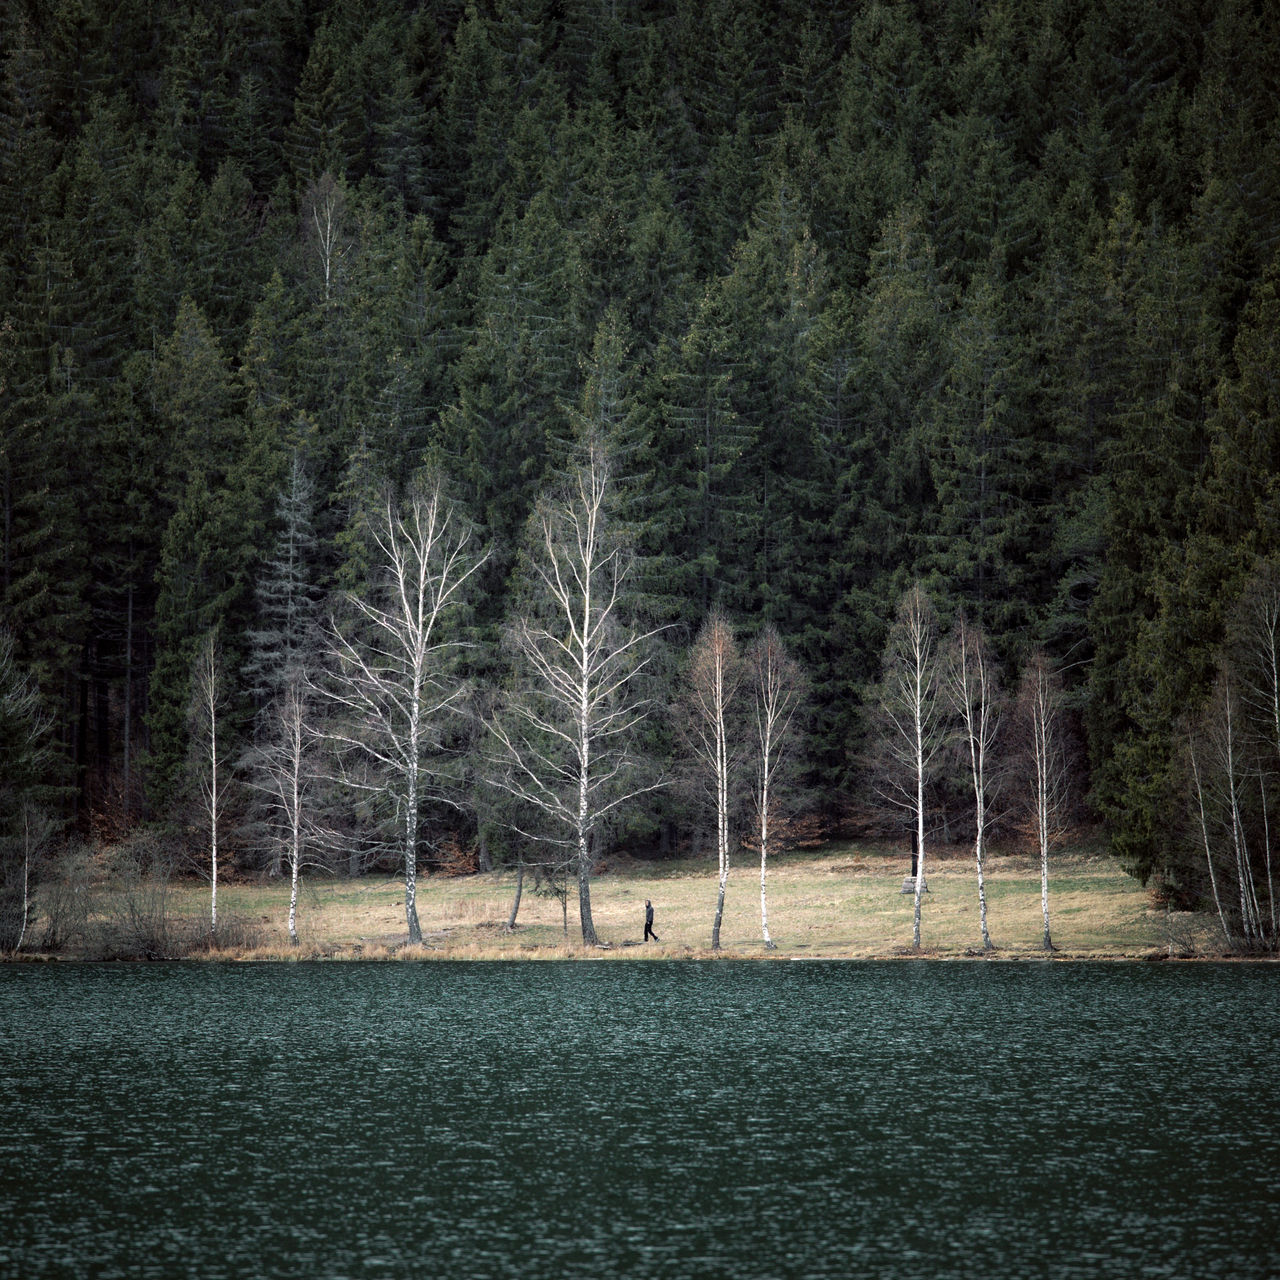 Forest Forest Photography Grass Green Color Lake Lake View Lakeshore Landscape Landscape_Collection National Park Nature Nature Photography Nature_collection Naturelovers Nautical Vessel People People And Places People Watching Person Tree TreePorn Trees Trees And Sky Walking Around Water